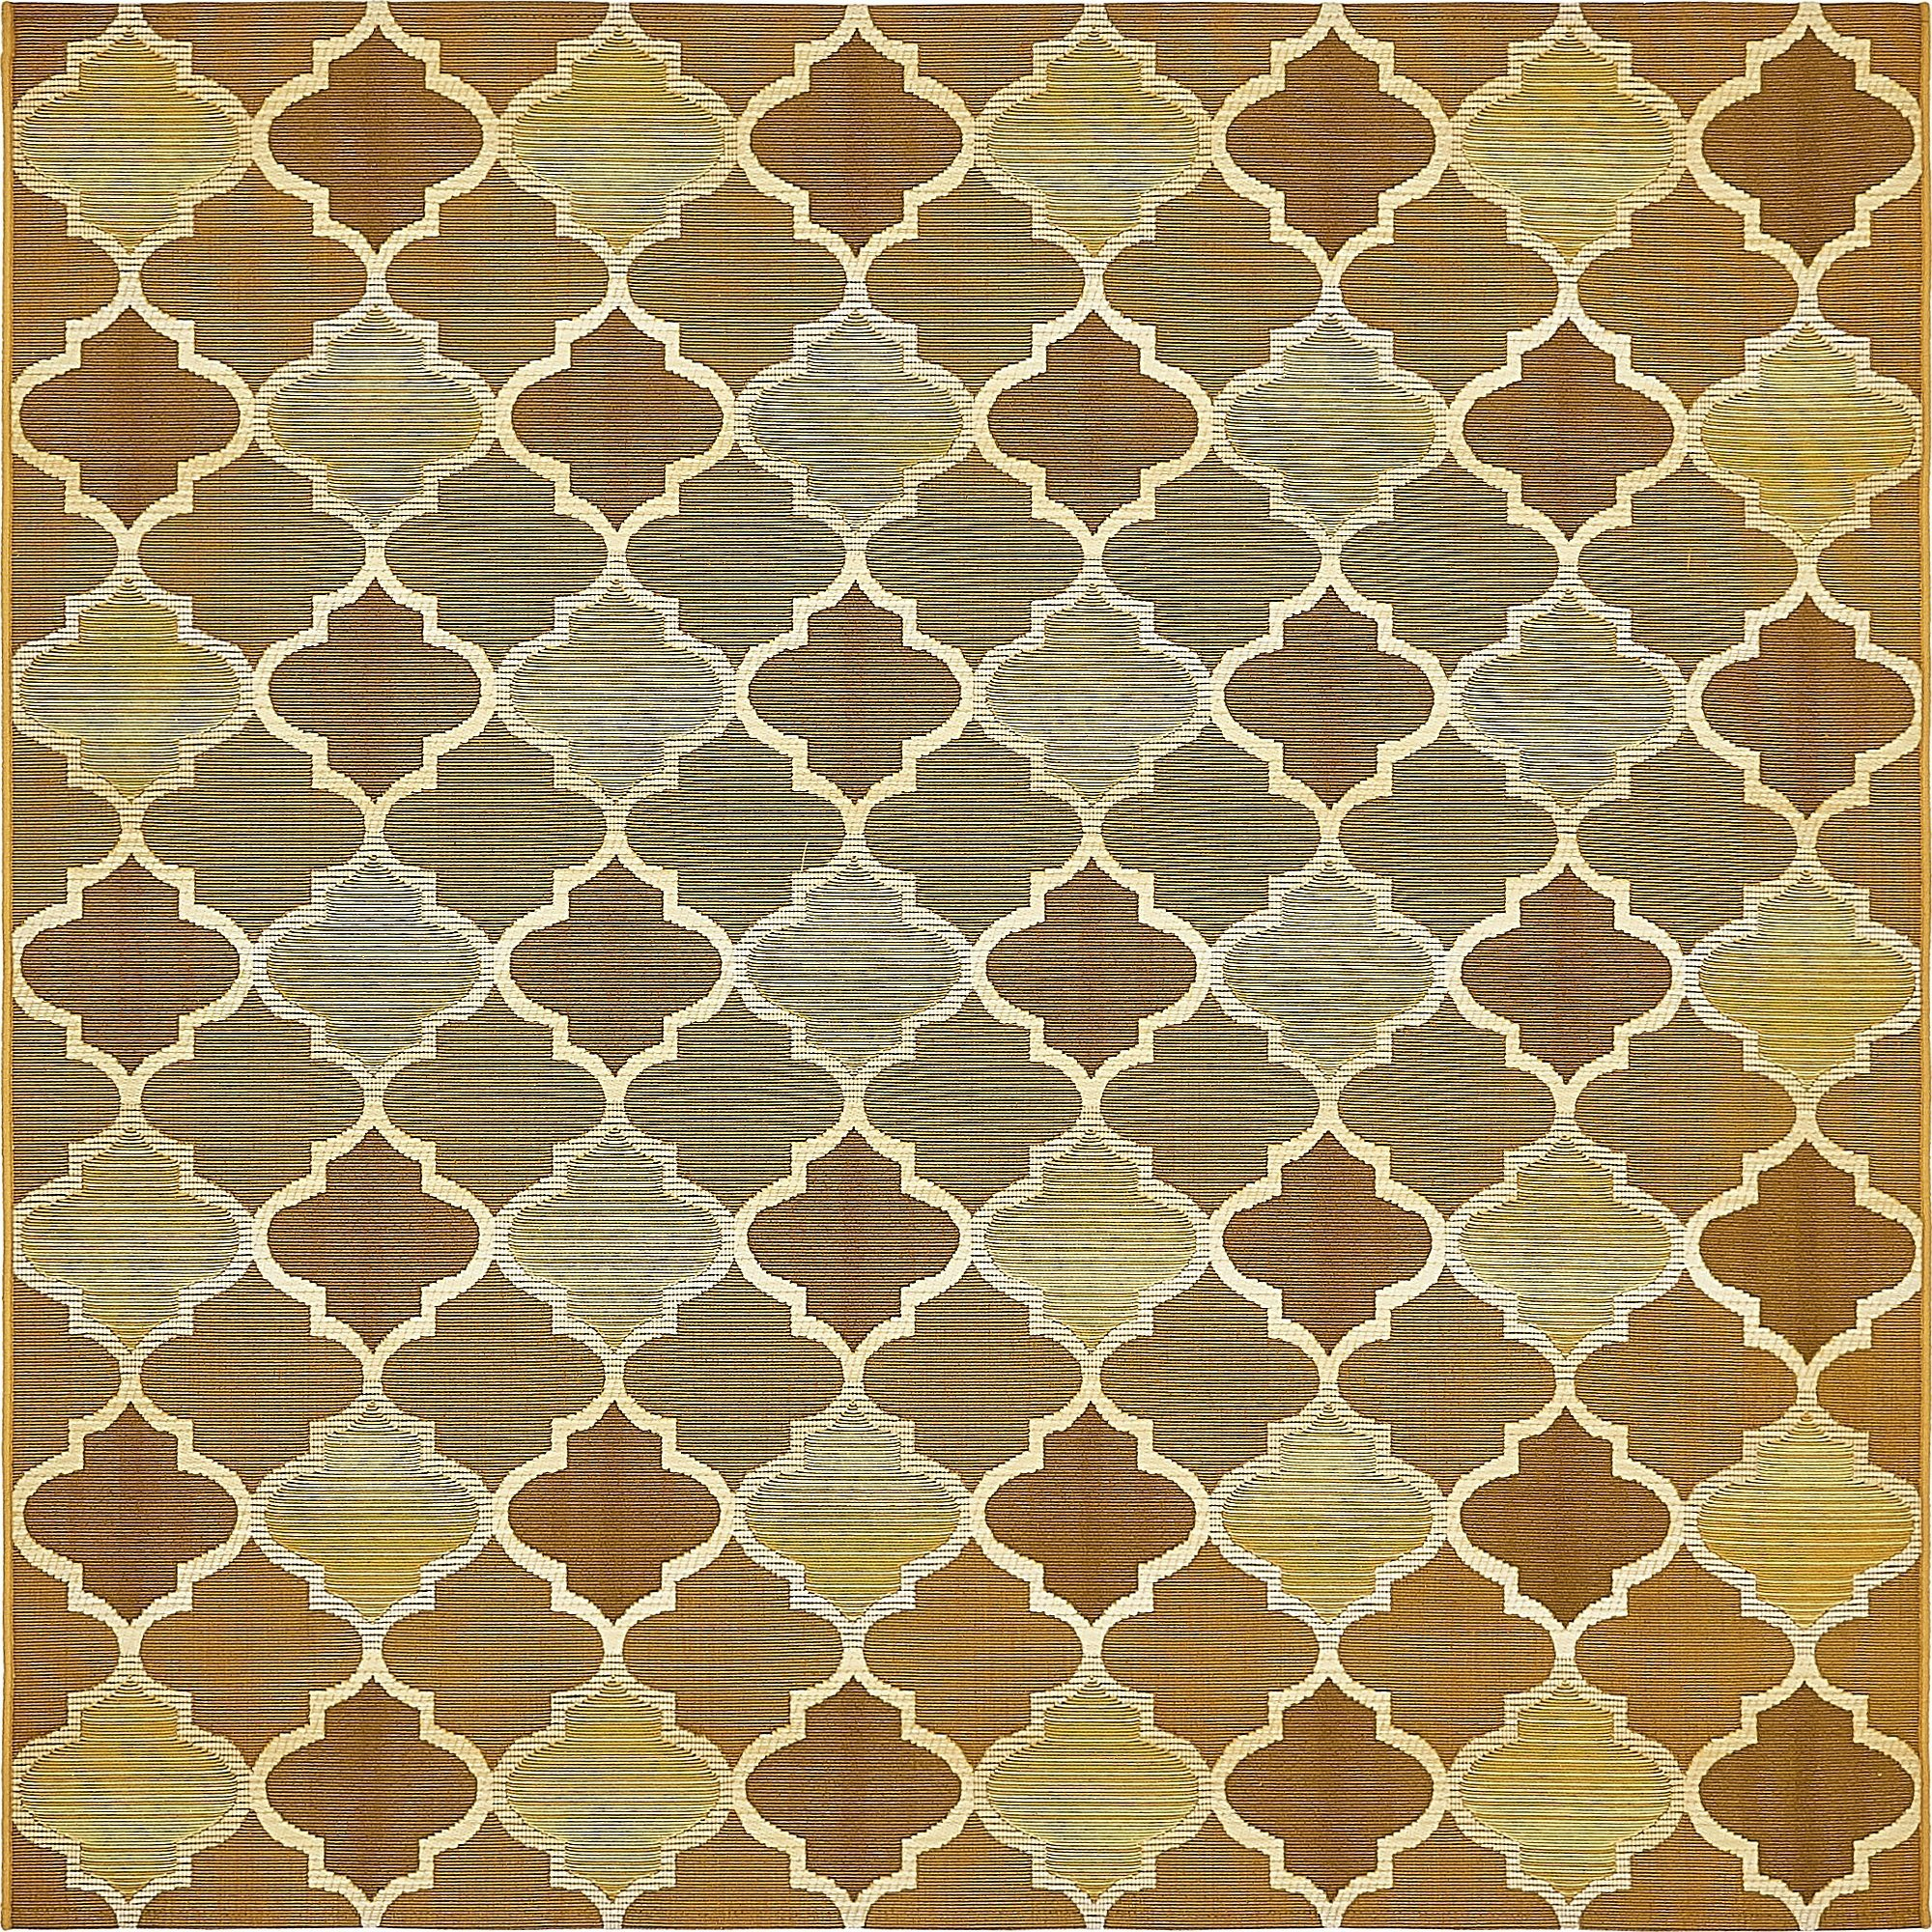 Unique Loom Eden Outdoor Collection Gold 6 ft Square Area Rug (6' x 6')